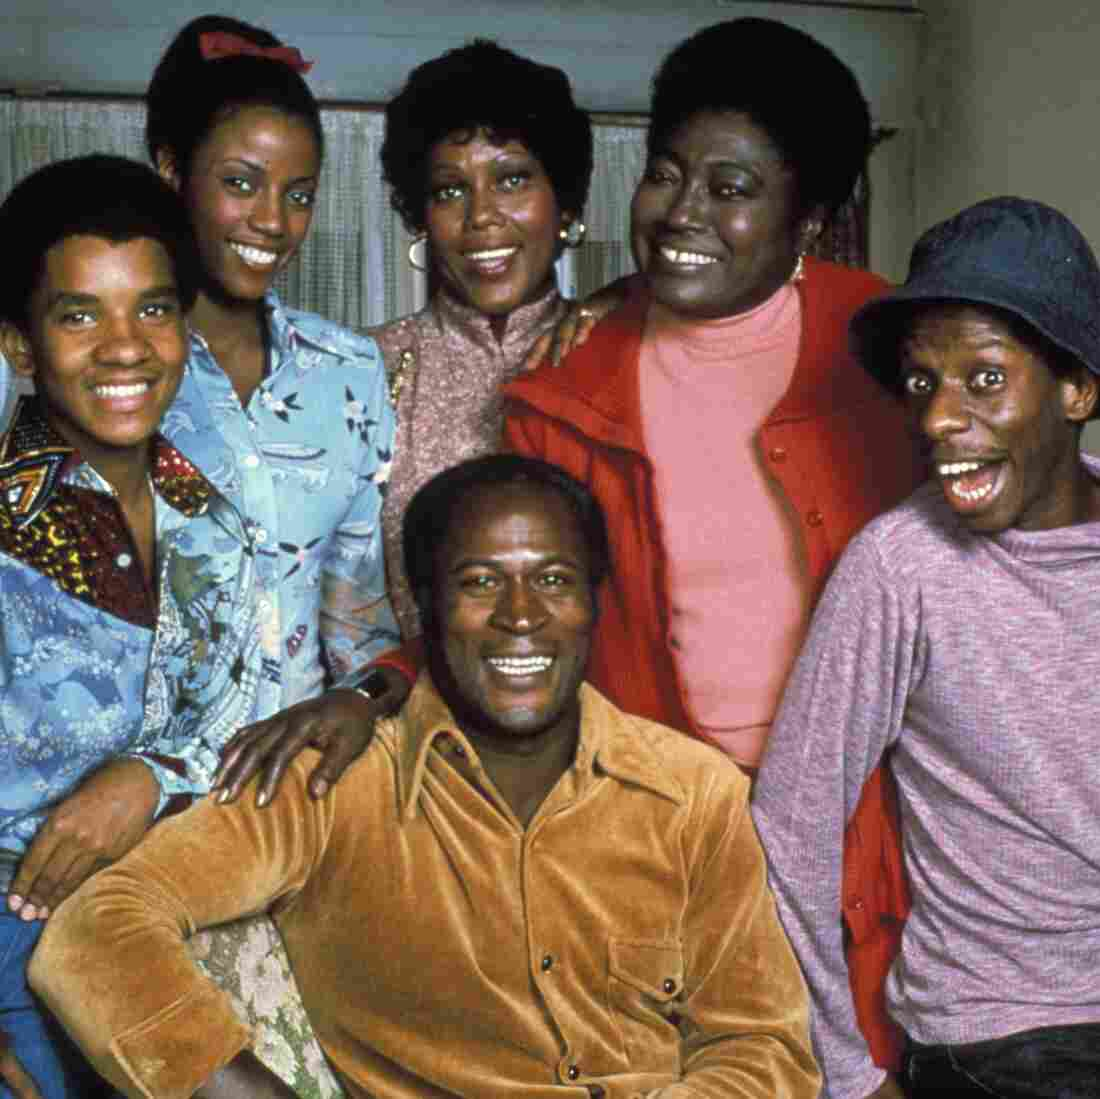 The Evans family from Good Times. Bern Nadette Stanis is second from left.